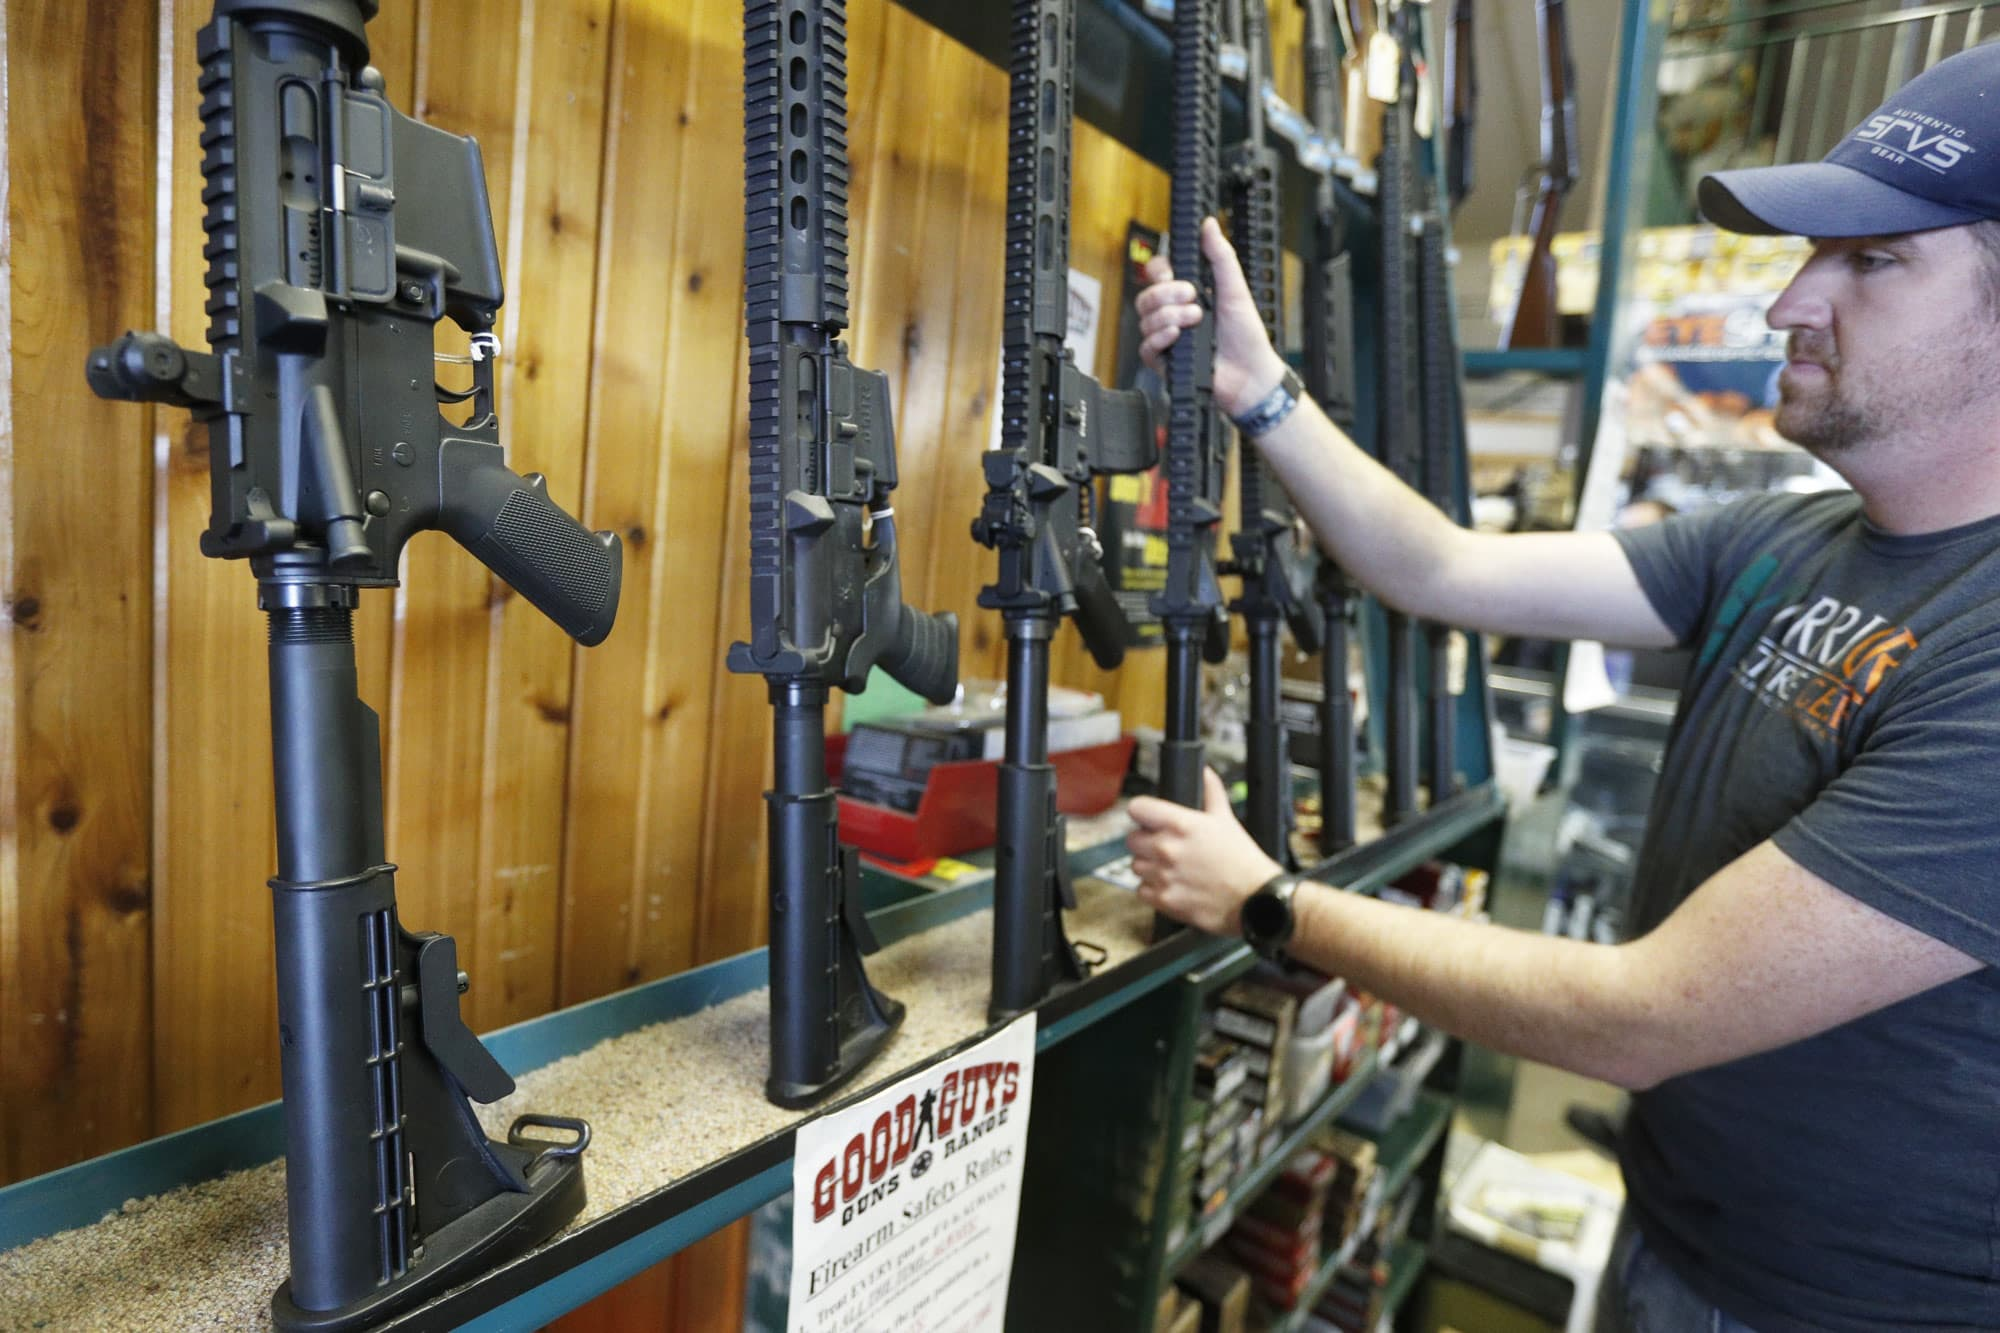 definition of what's an 'assault weapon' is a very contentious issue